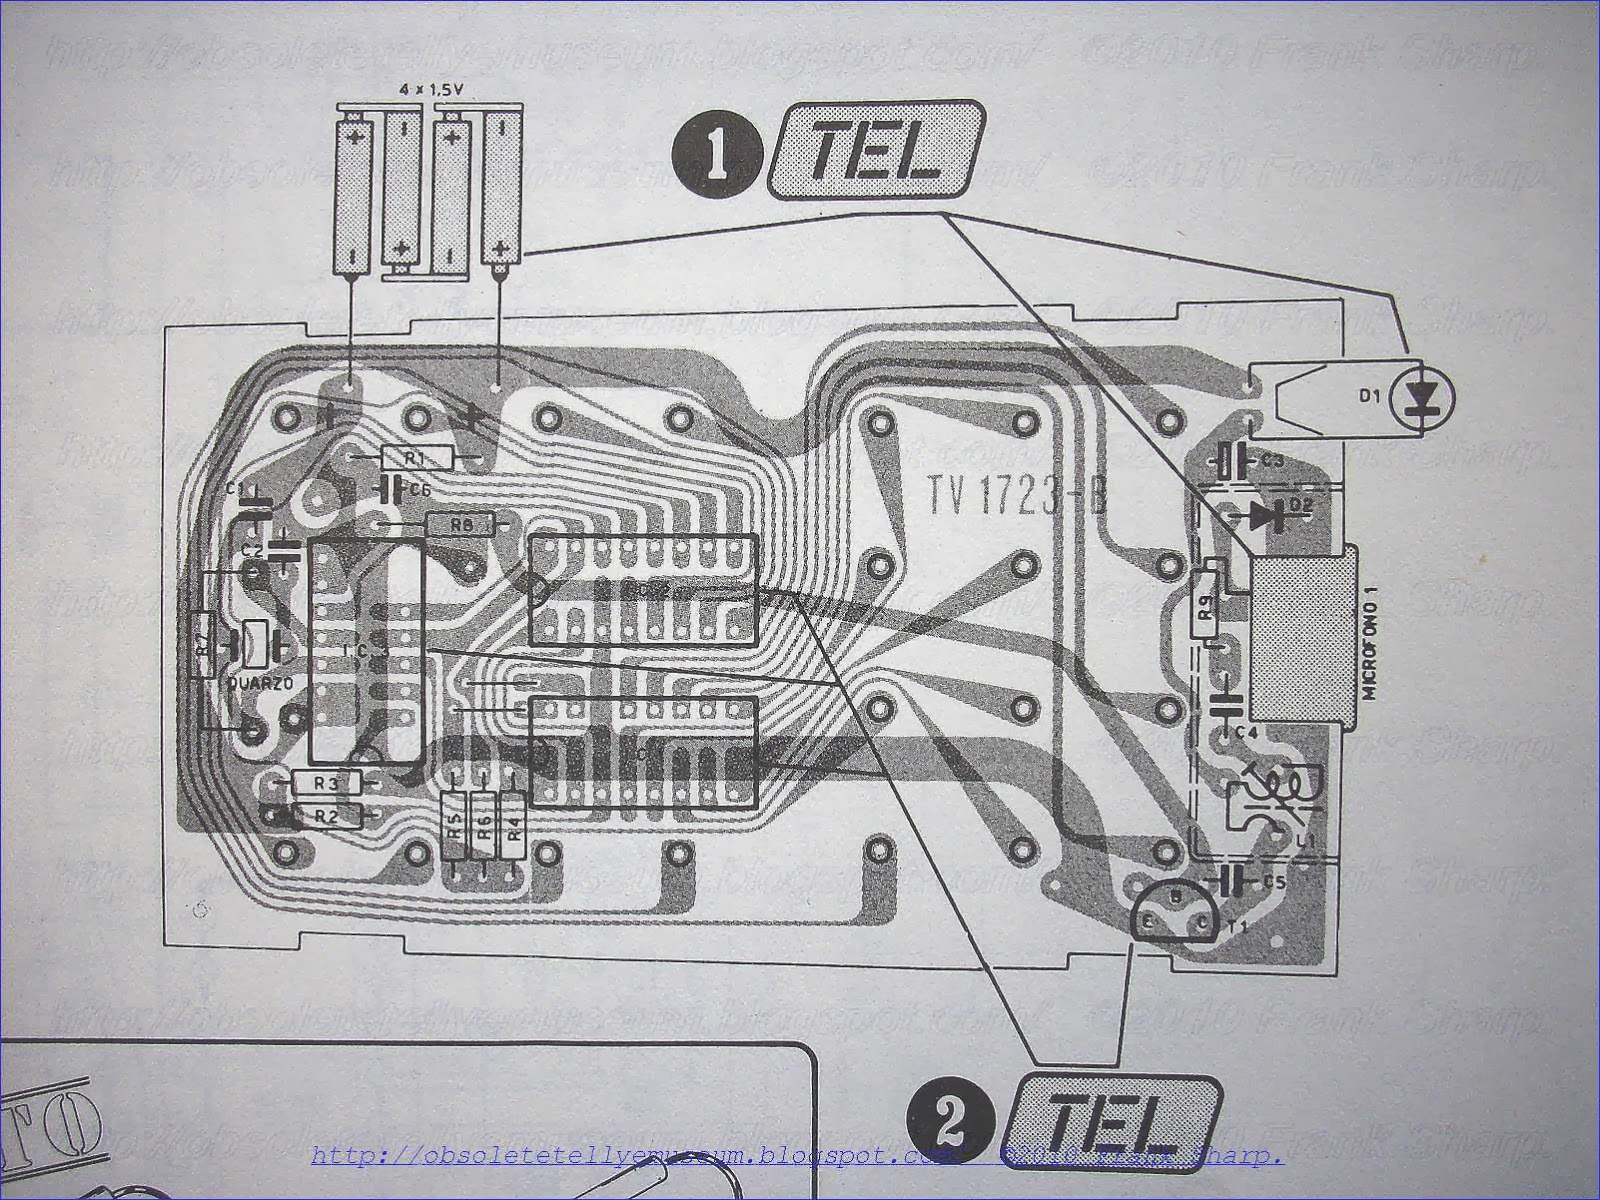 Obsolete Technology Tellye Mivar Radiovar Tv26 T63 Chassis 760 Old Engineering Schematics On A Steel Structure 6 Pcbs Are Composing The Receiver In All Parts Except For Controls Which Located Front Box Tv1899